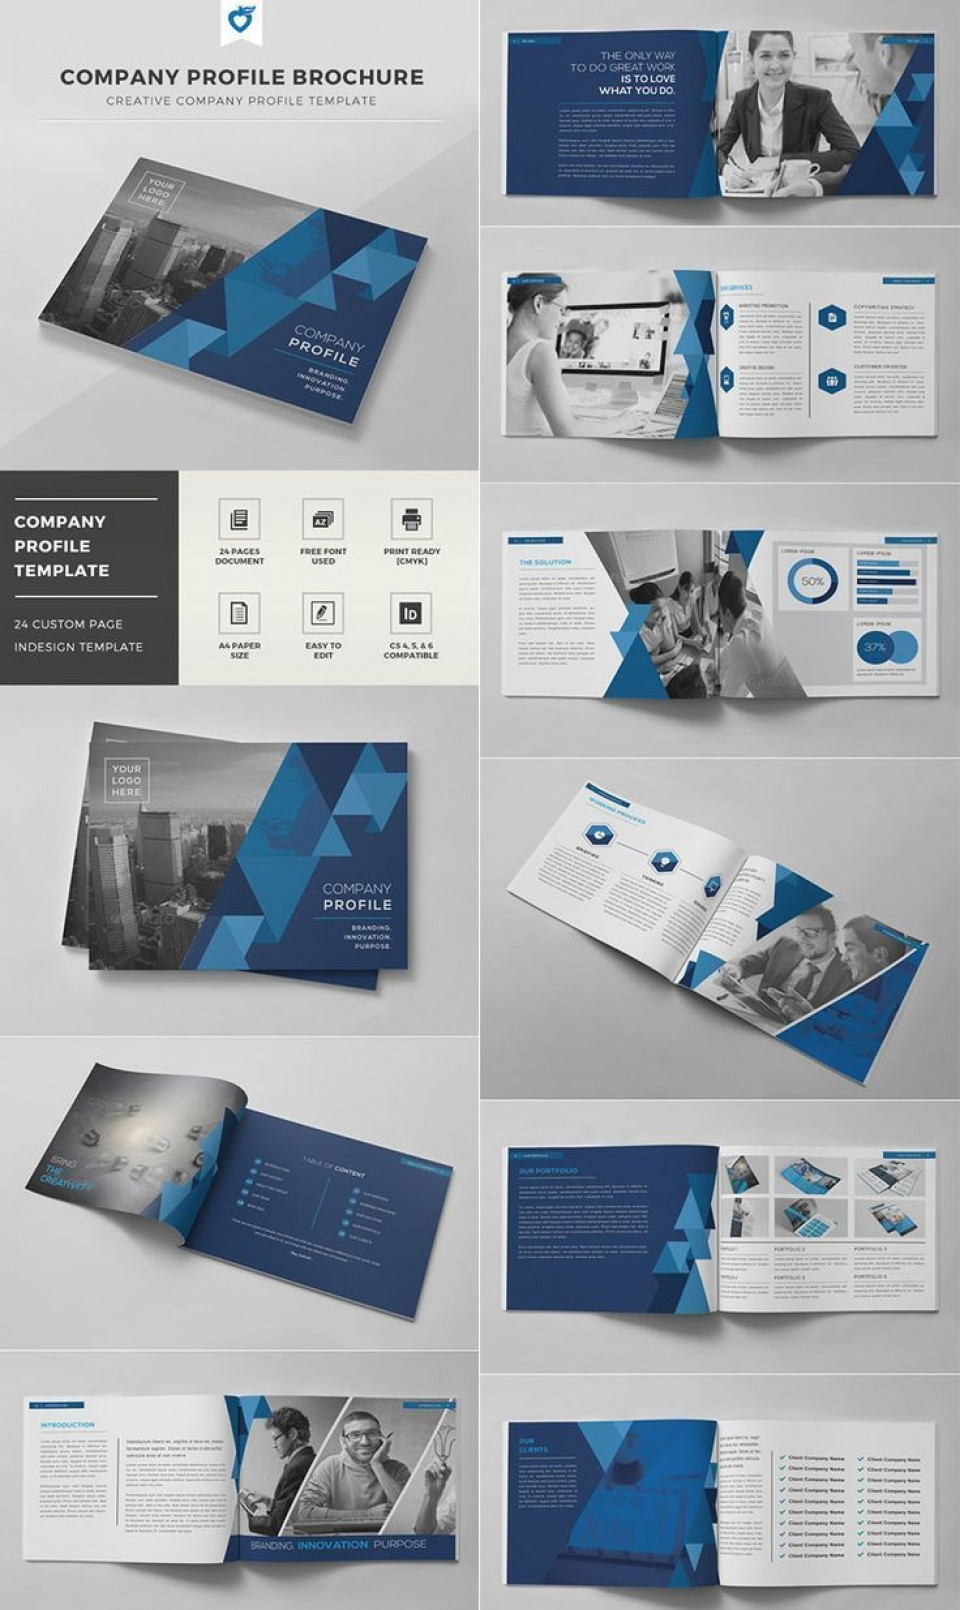 003 Astounding Busines Brochure Design Template Free Download Inspiration 960